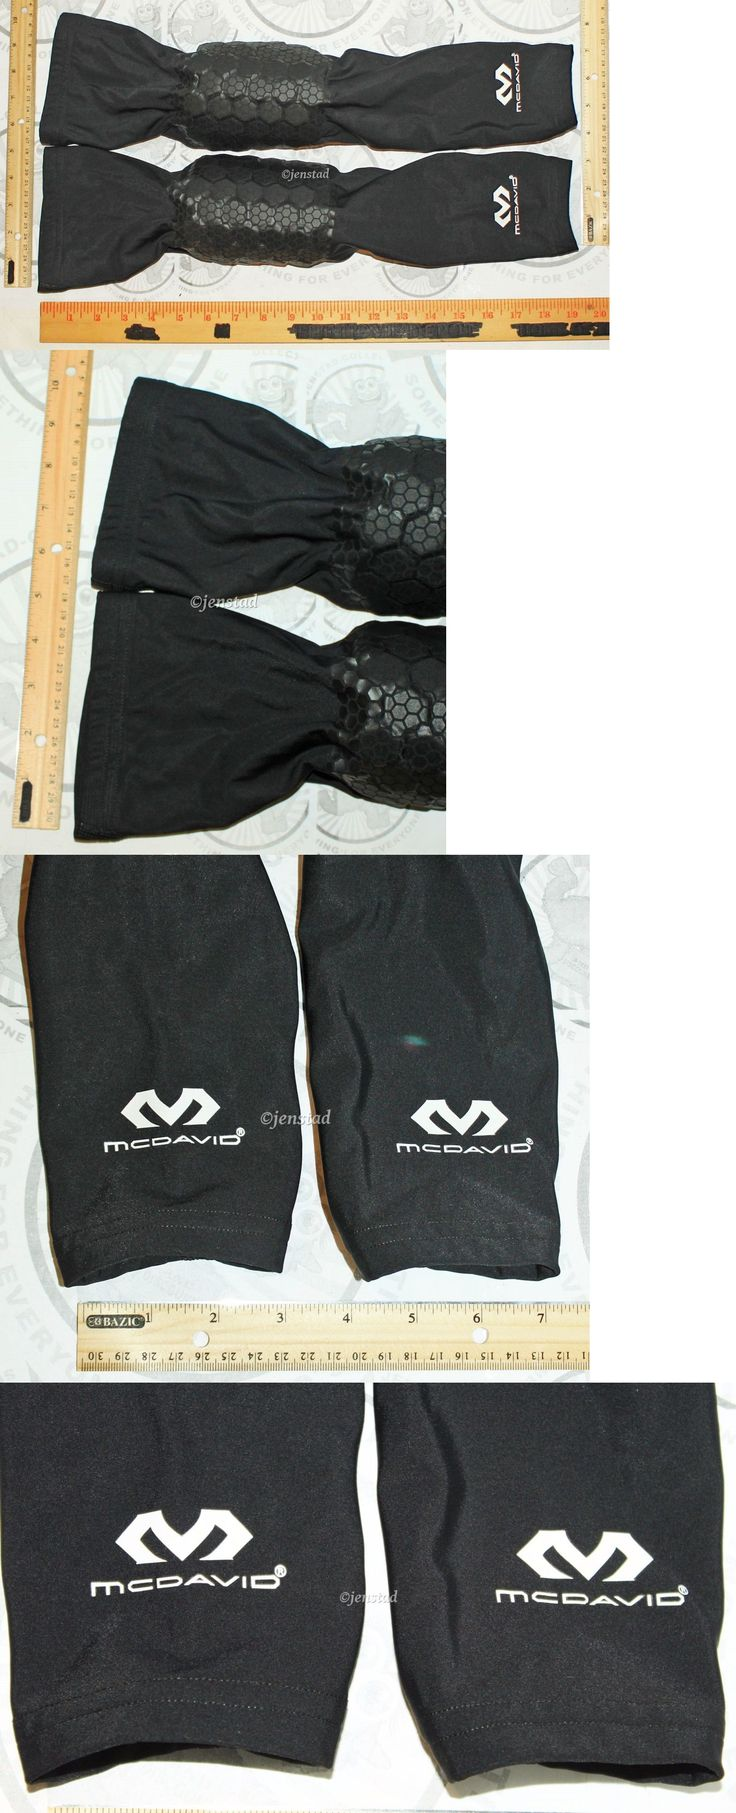 Support and Protective Gear 158919: Mcdavid Teflx Hex Pad Leg Sleeve Black Men Women Impact Protection Large BUY IT NOW ONLY: $34.94